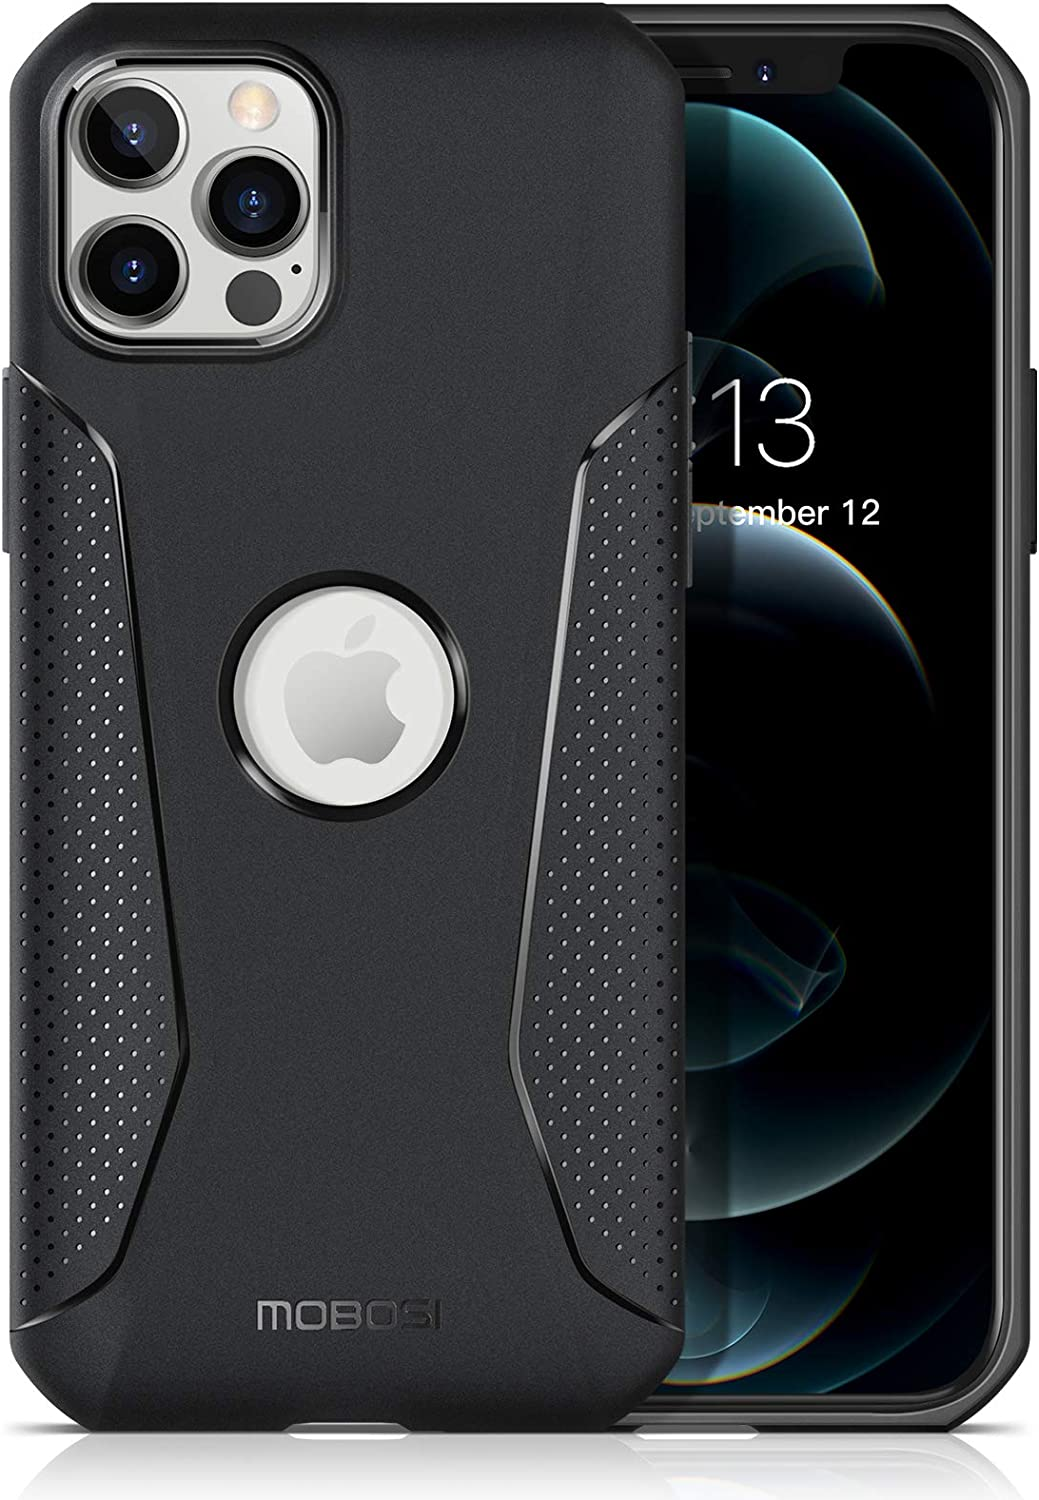 MOBOSI Shockproof Case Compatible with iPhone 12/iPhone 12 Pro, Shock Absorbing Bumpers, Slim Lightweight Soft Durable TPU Cell Phone Cover Case 6.1 Inch (2020) - Matte Black